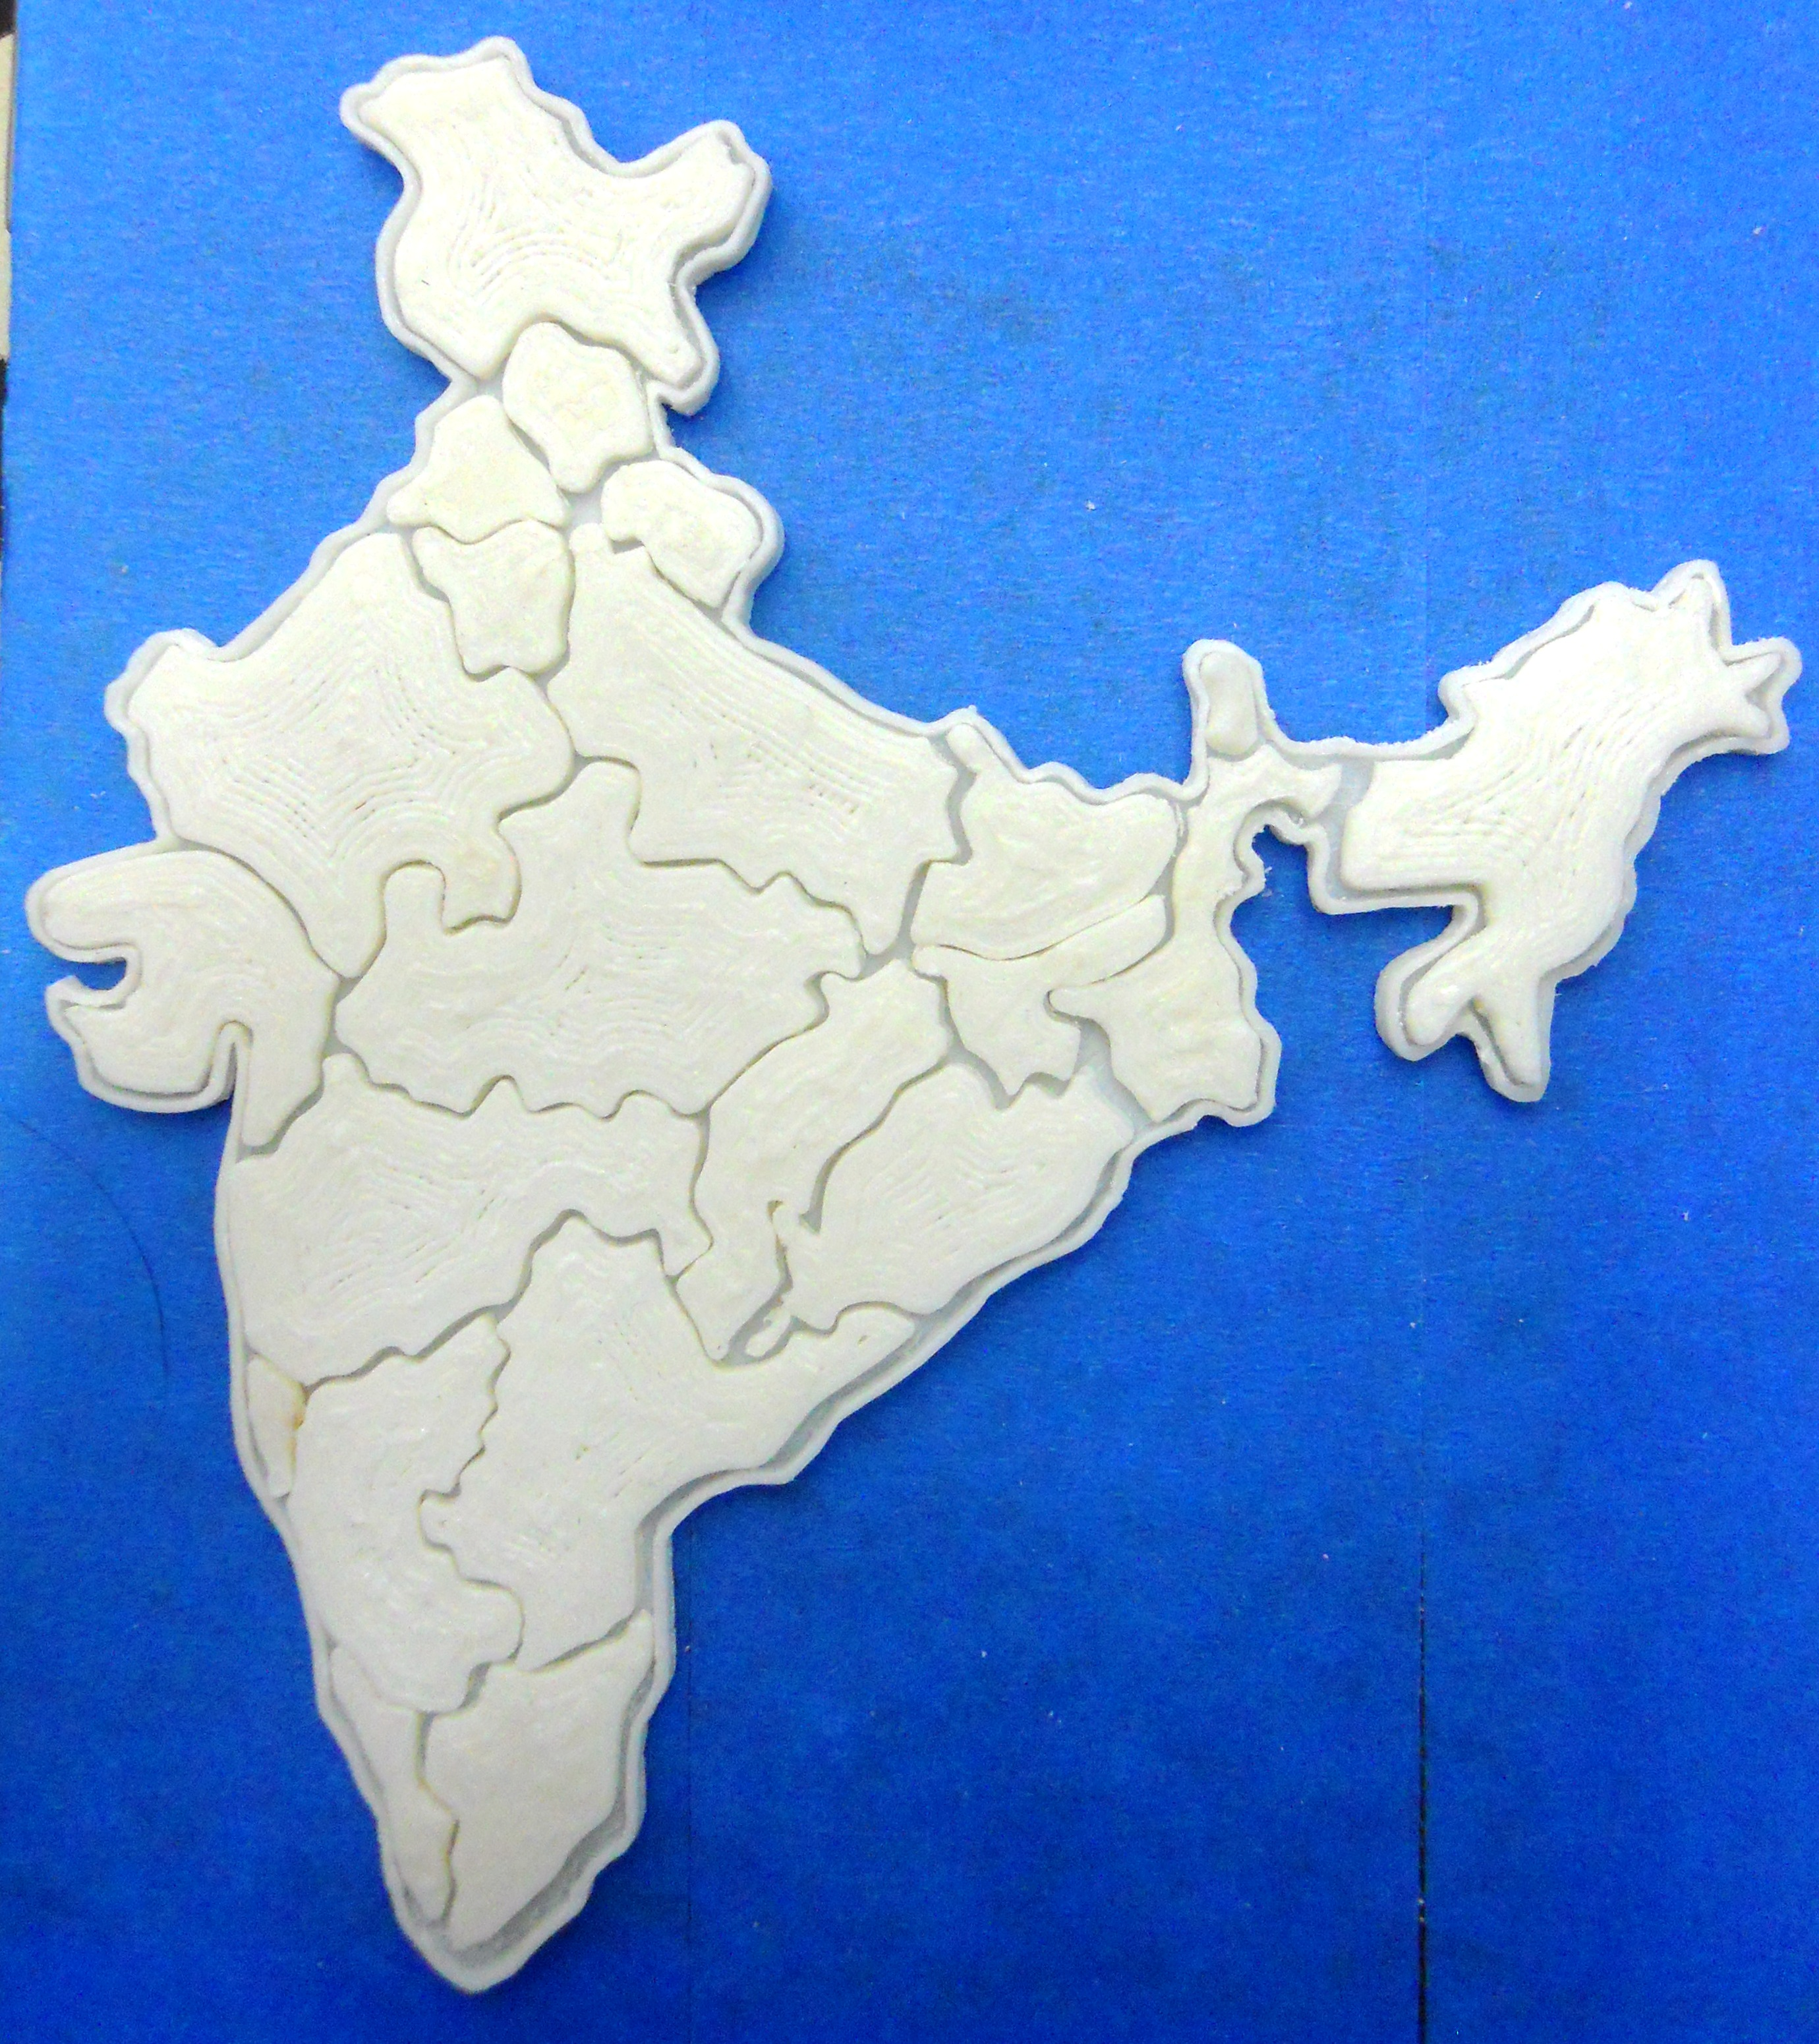 India Map Puzzle.India Map Puzzle By Indusmaker Thingiverse